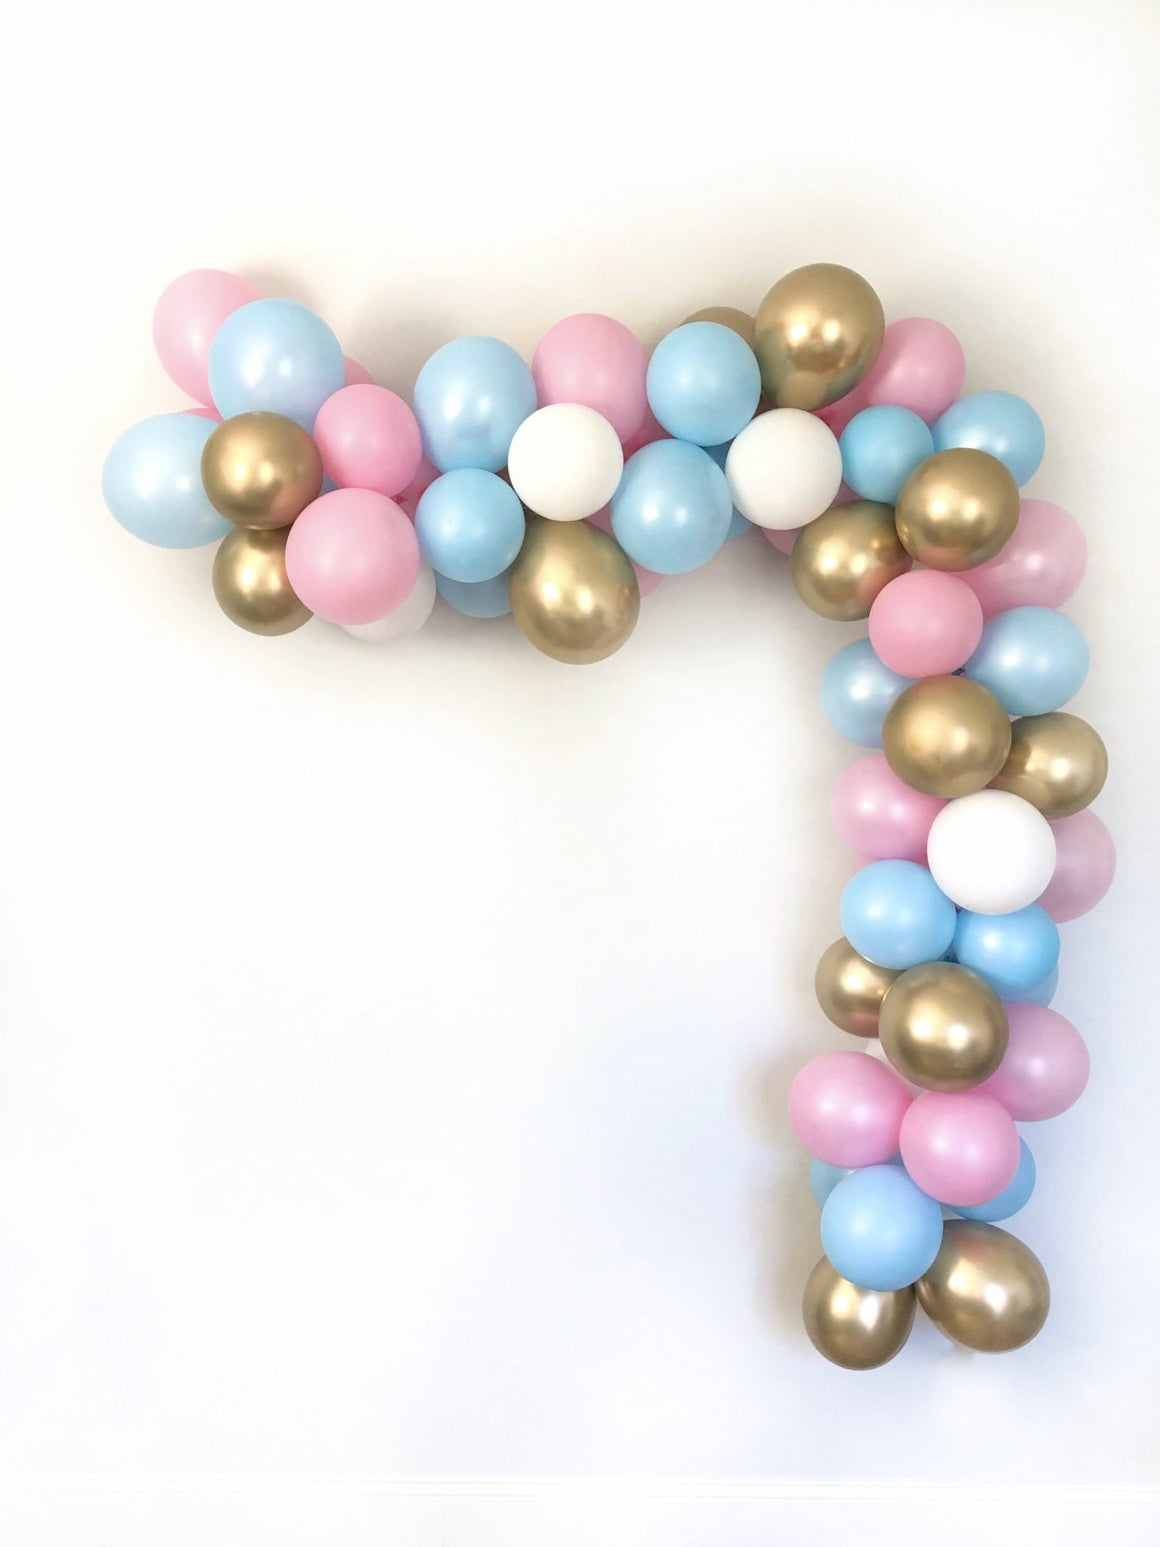 Gender Neutral Balloon Garland Kit - Pink, Blue, Gold - Pretty Collected